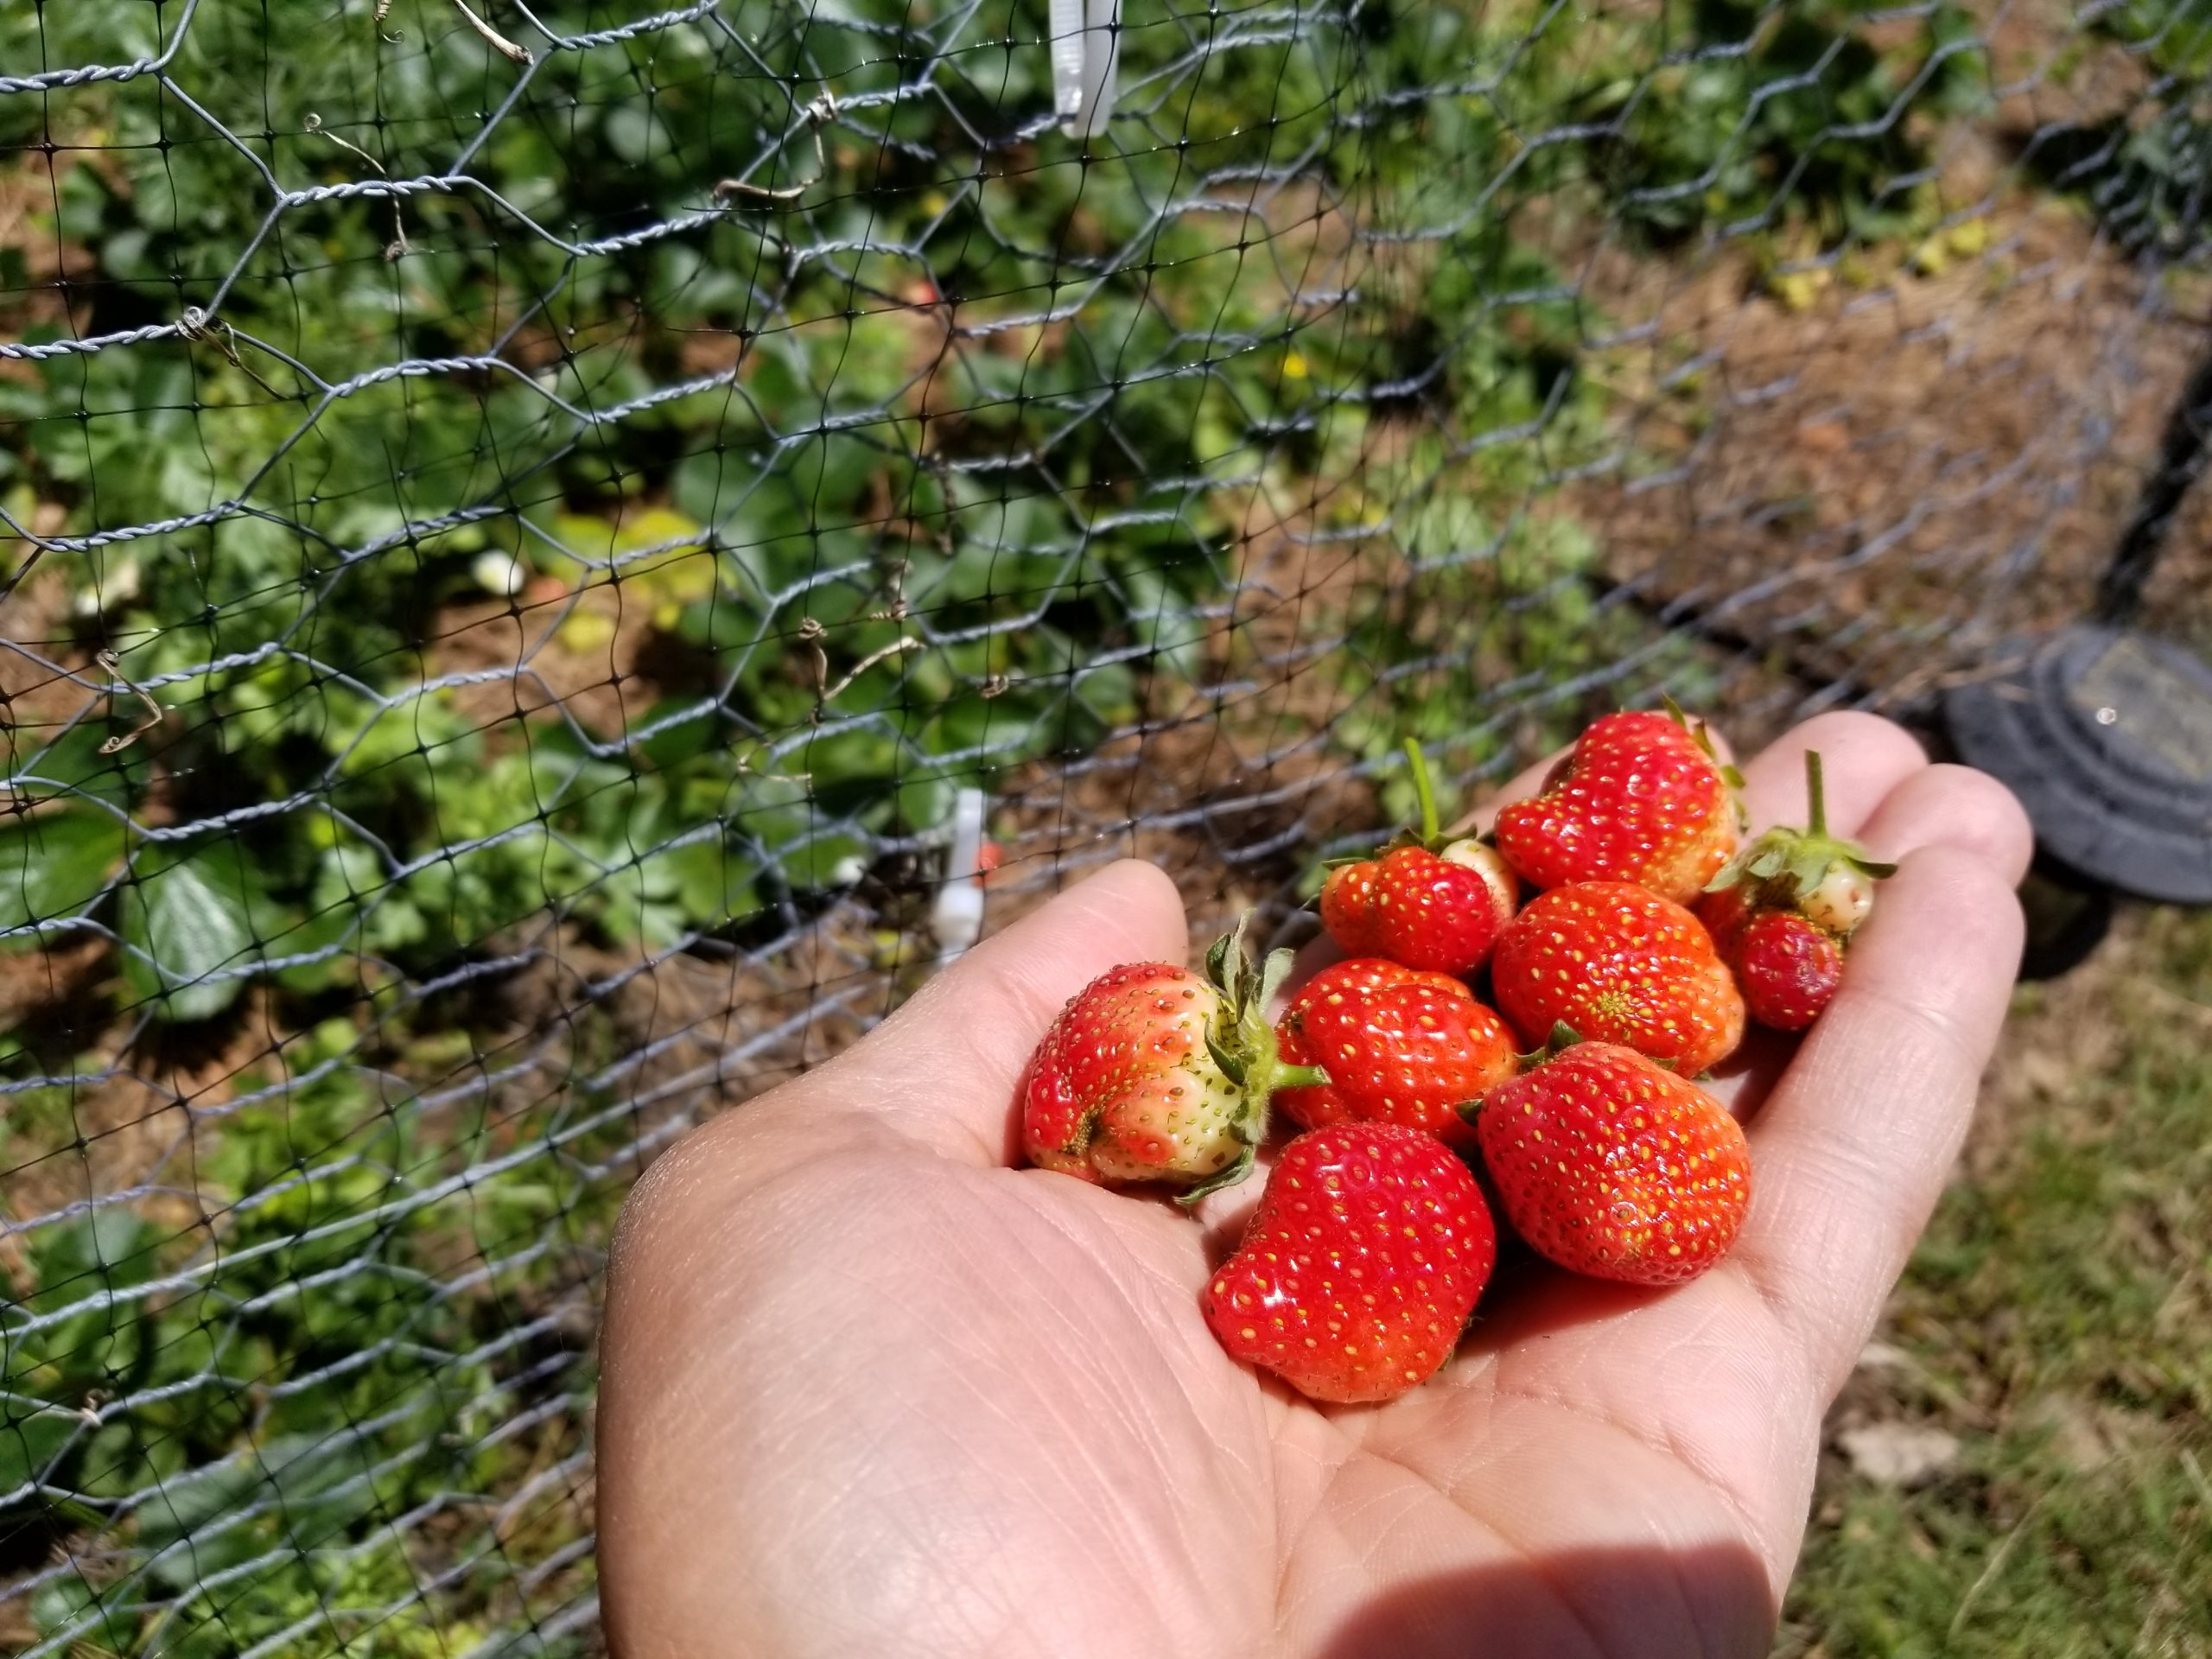 hand-full-of-strawberries